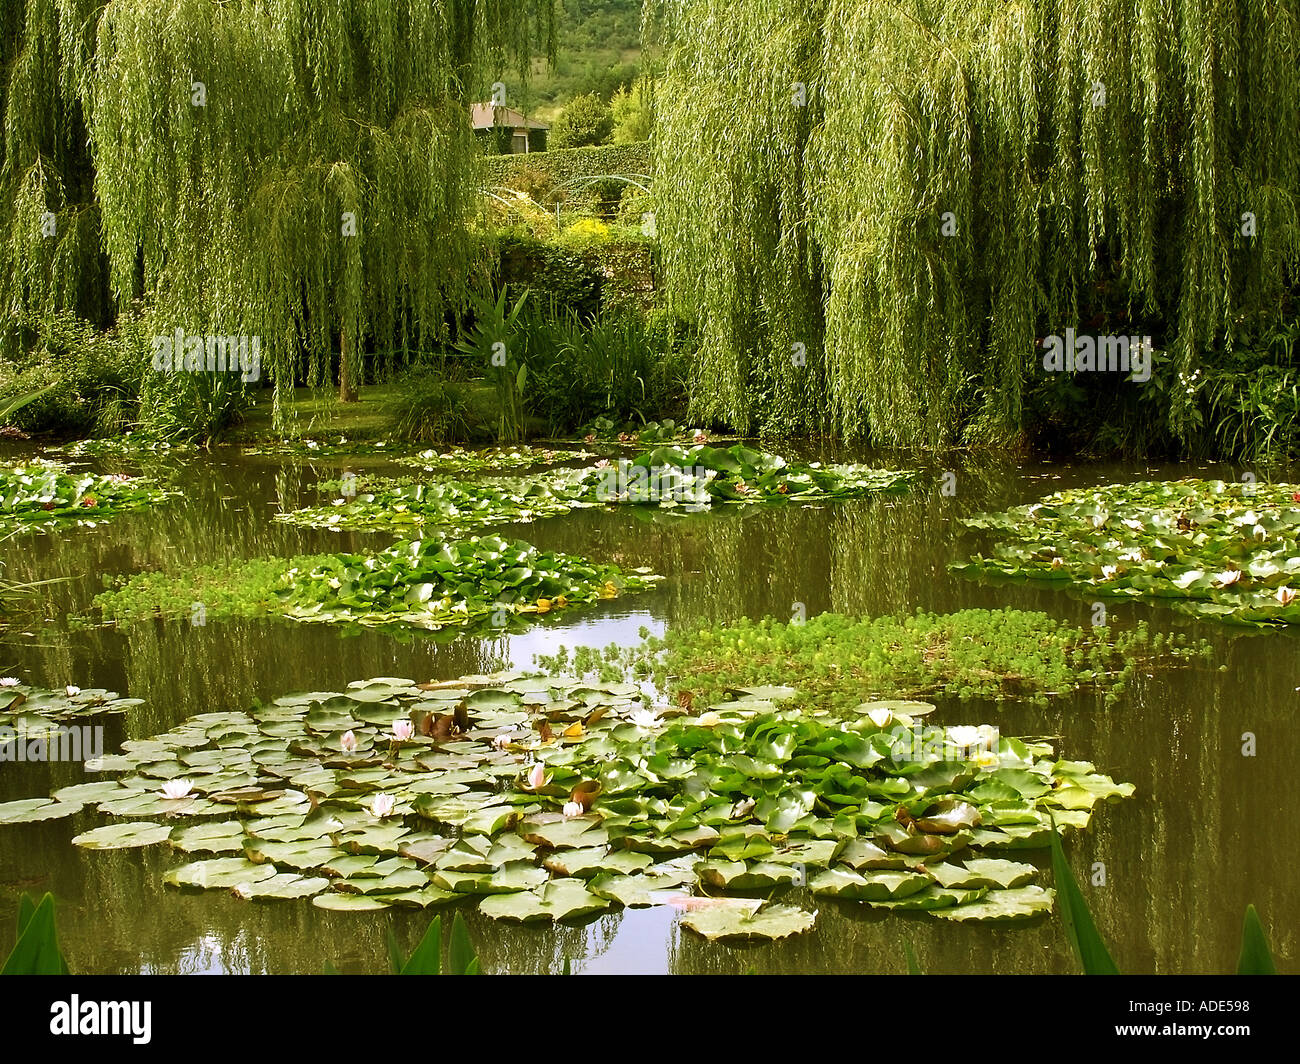 France Normandy Eure Giverny The House And Gardens Of The Painter Monet The  Water Lily Garden